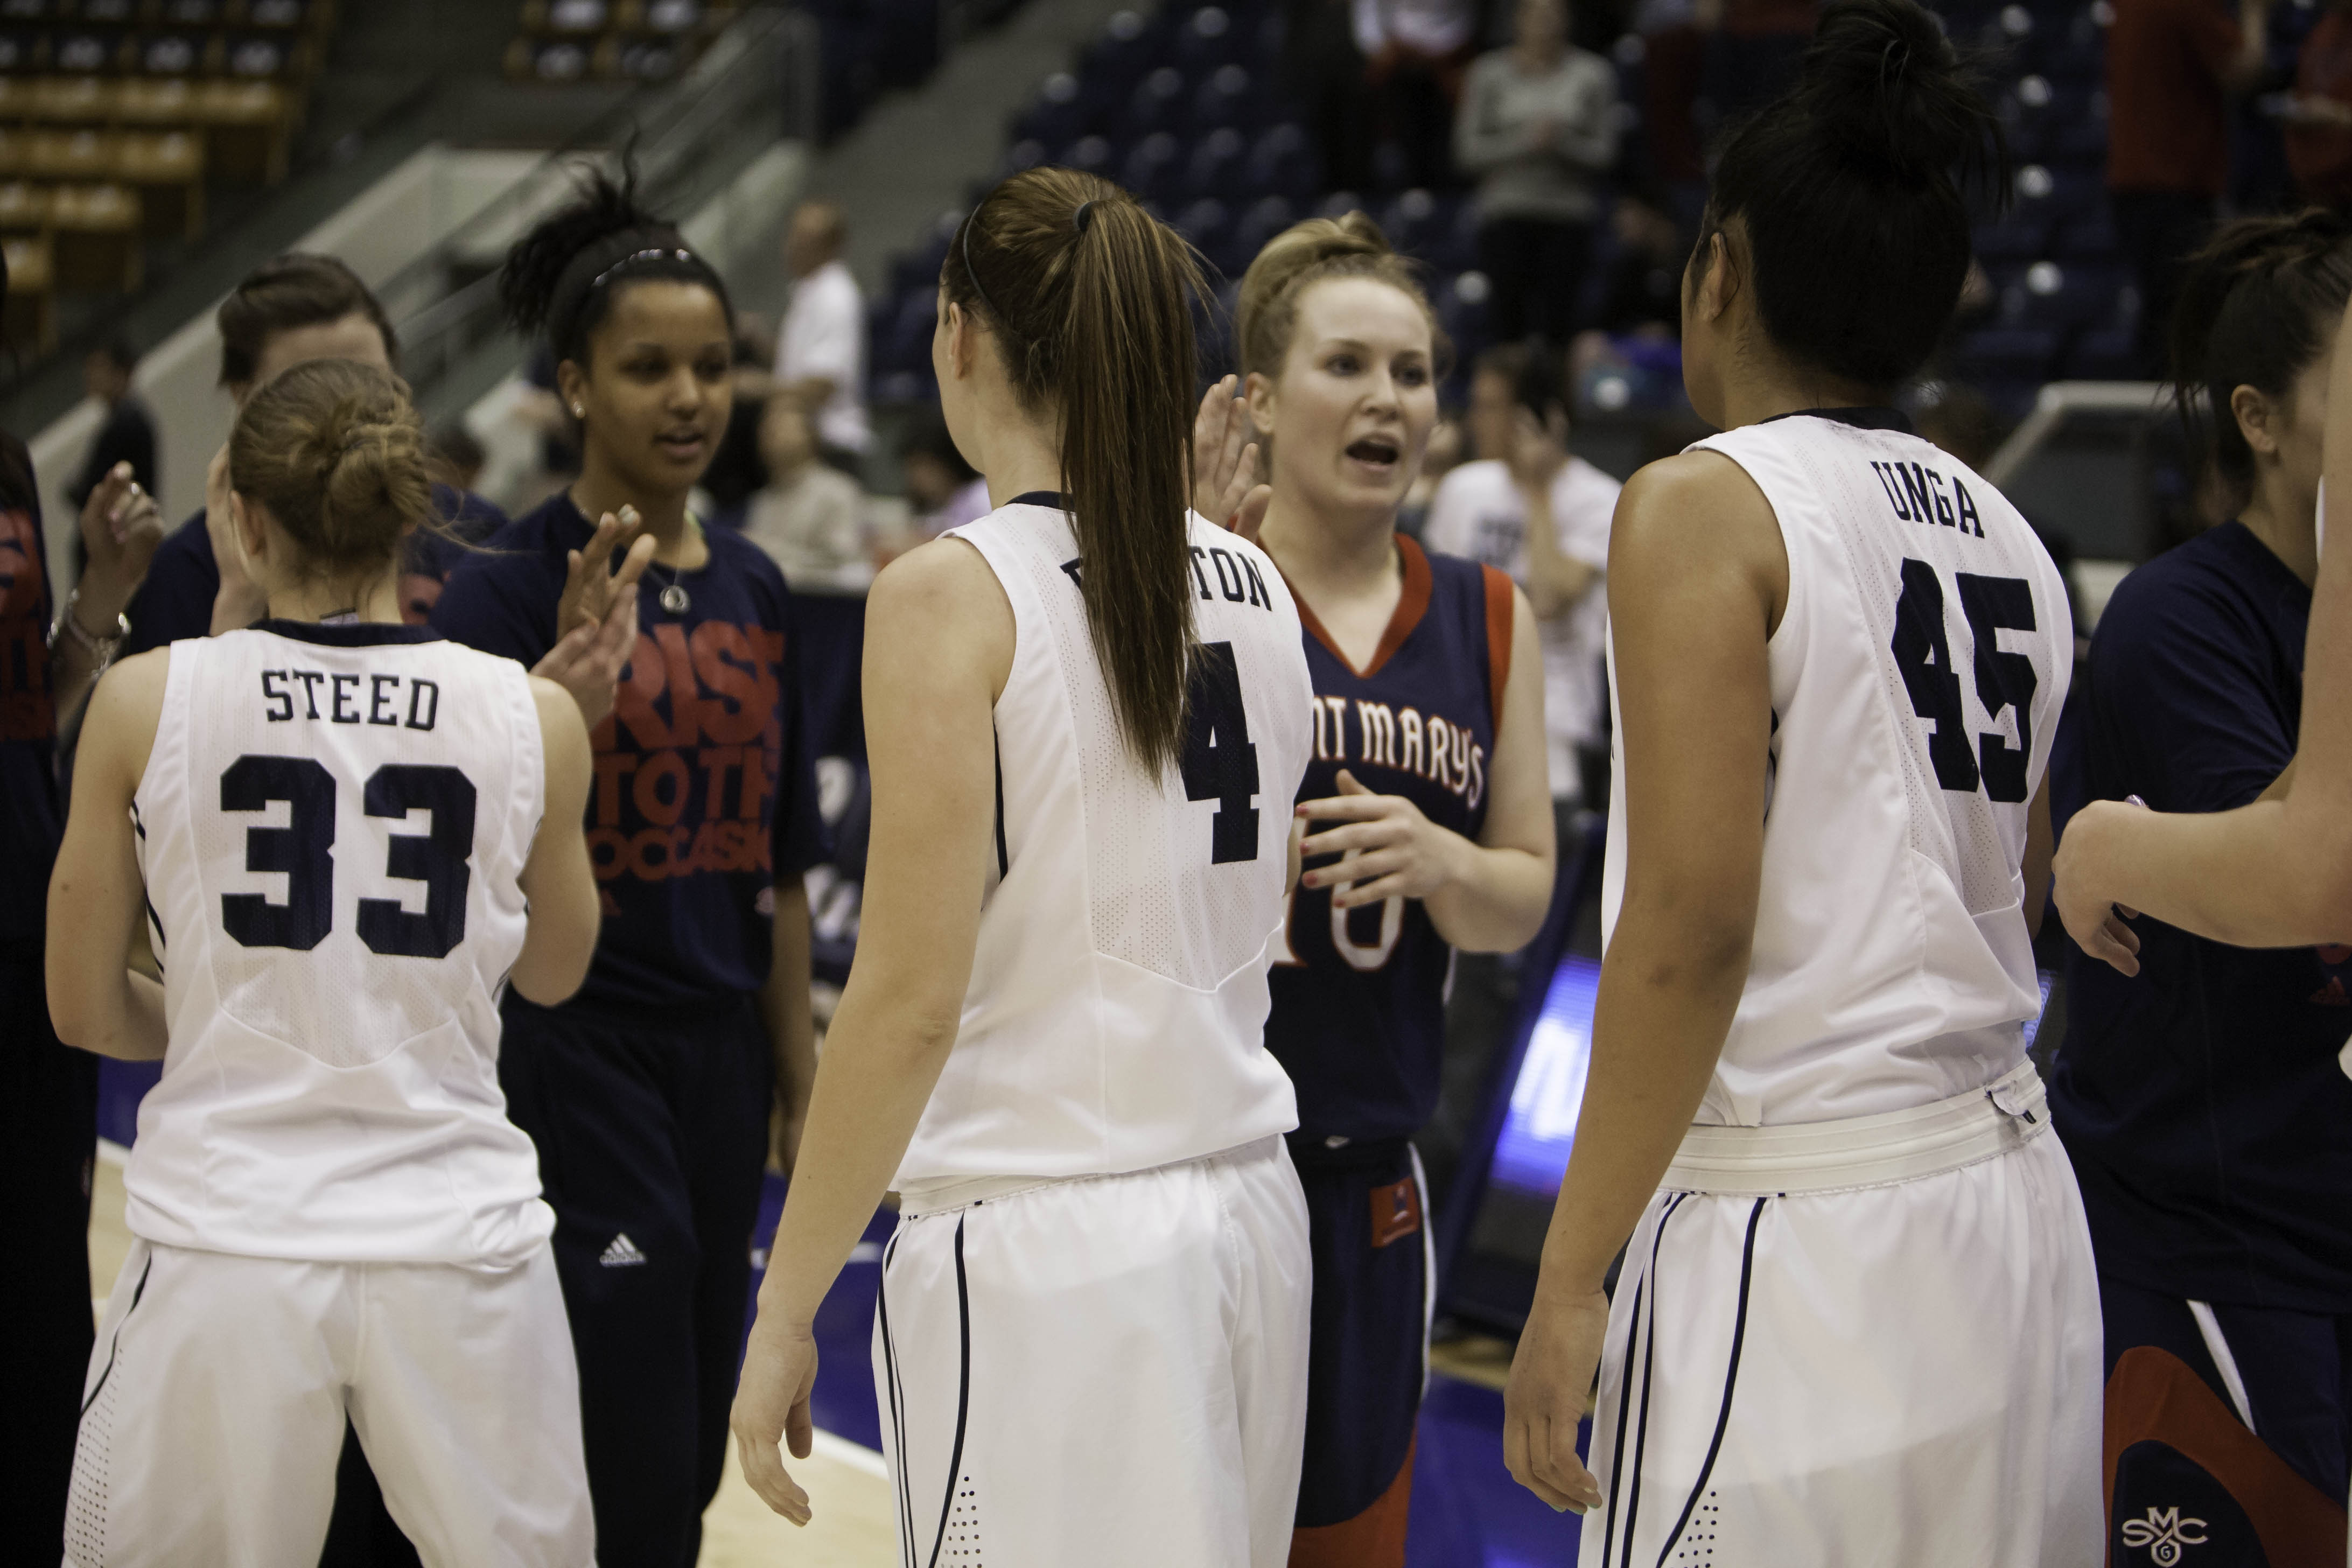 BYU players Haley Steed, Kim Beeston, and Keilani Unga congratulate St. Mary's players after the game on Wednesday. (Photo by Elliott Miller)